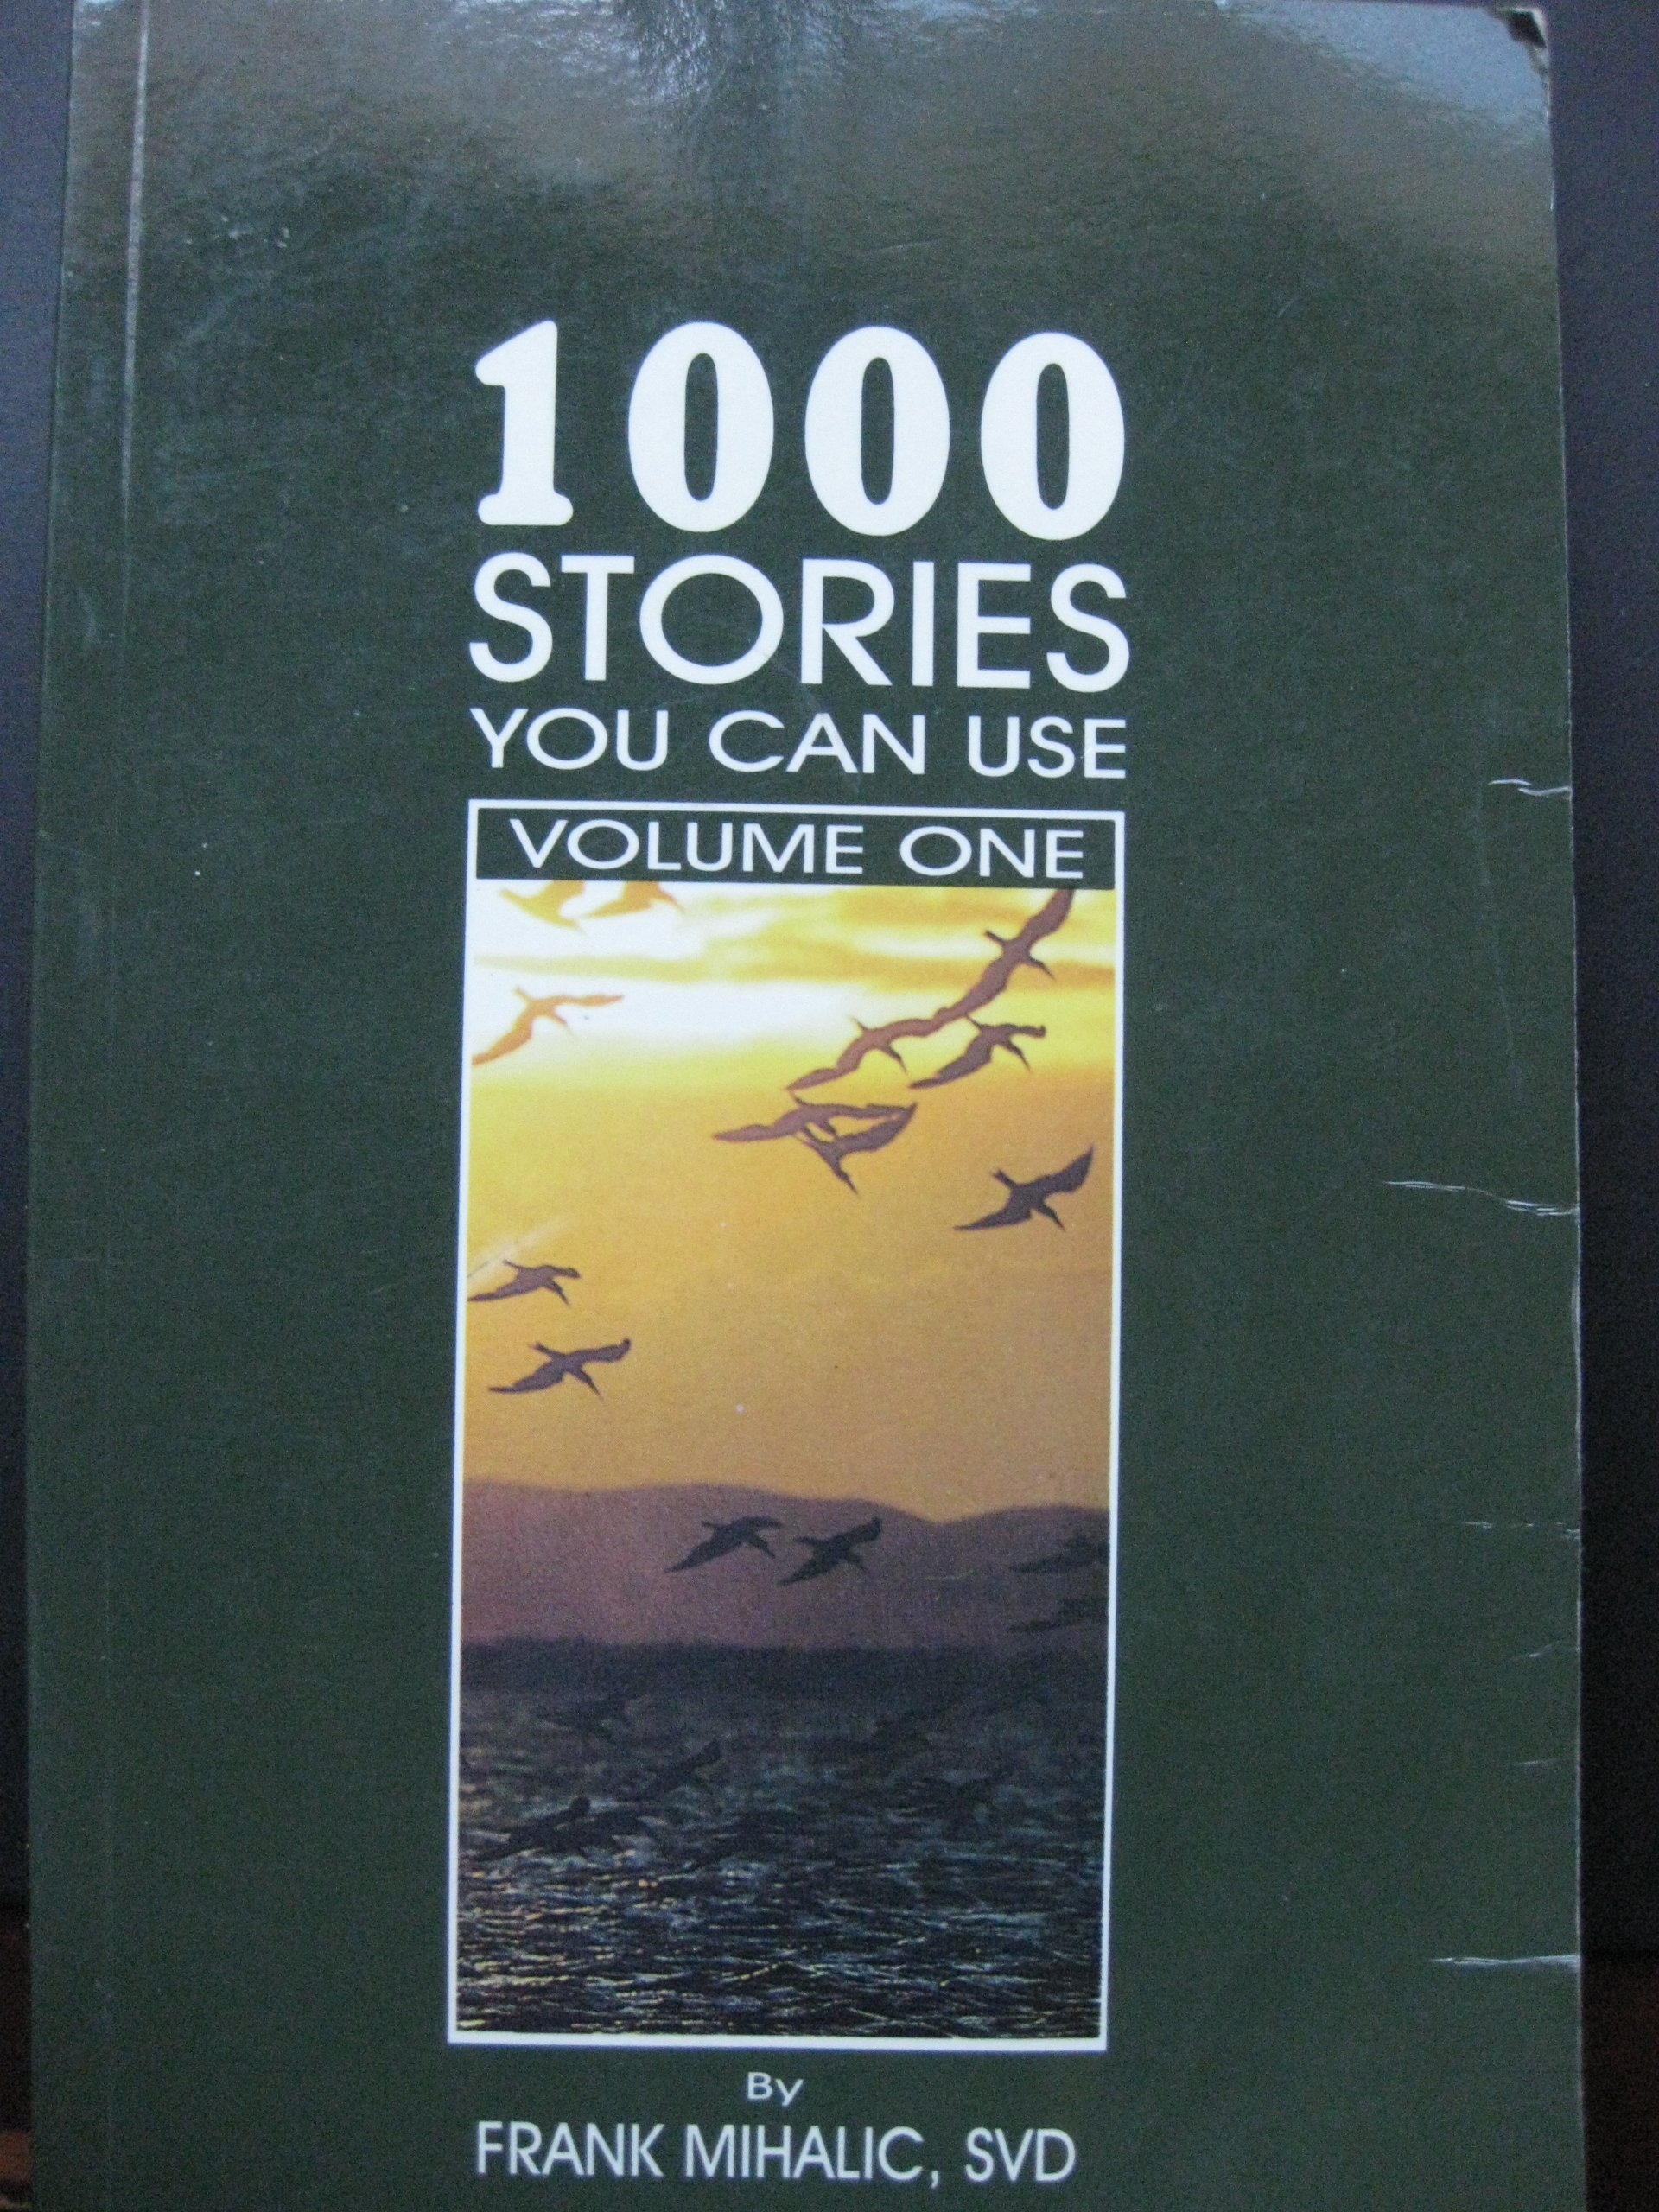 1000 Stories You Can Use (Volume One) (Volume One): SVD Frank Mihalic:  9789715100359: Amazon.com: Books